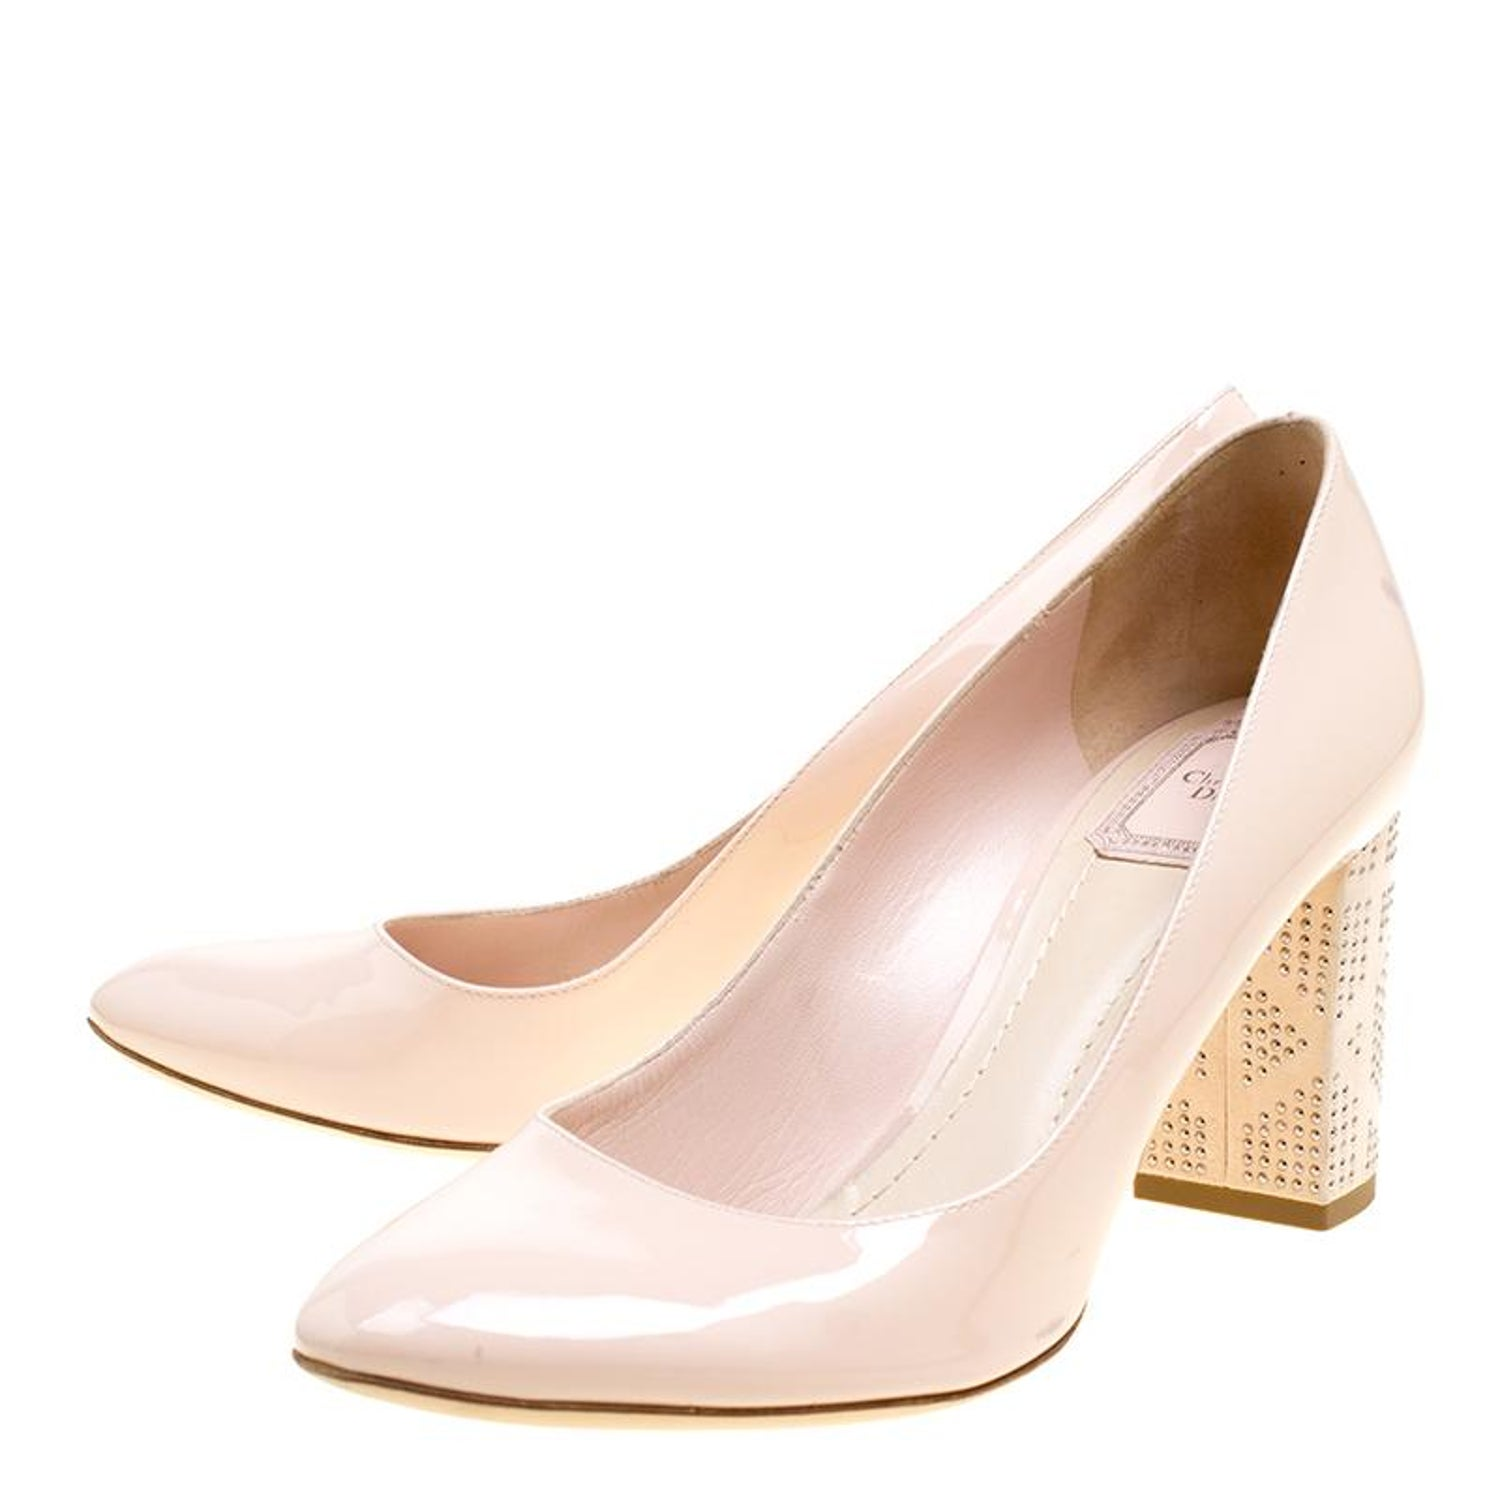 e4a4caa19cf Dior Blush Pink Patent Leather and Suede Block Heel Pumps Size 39.5 For  Sale at 1stdibs